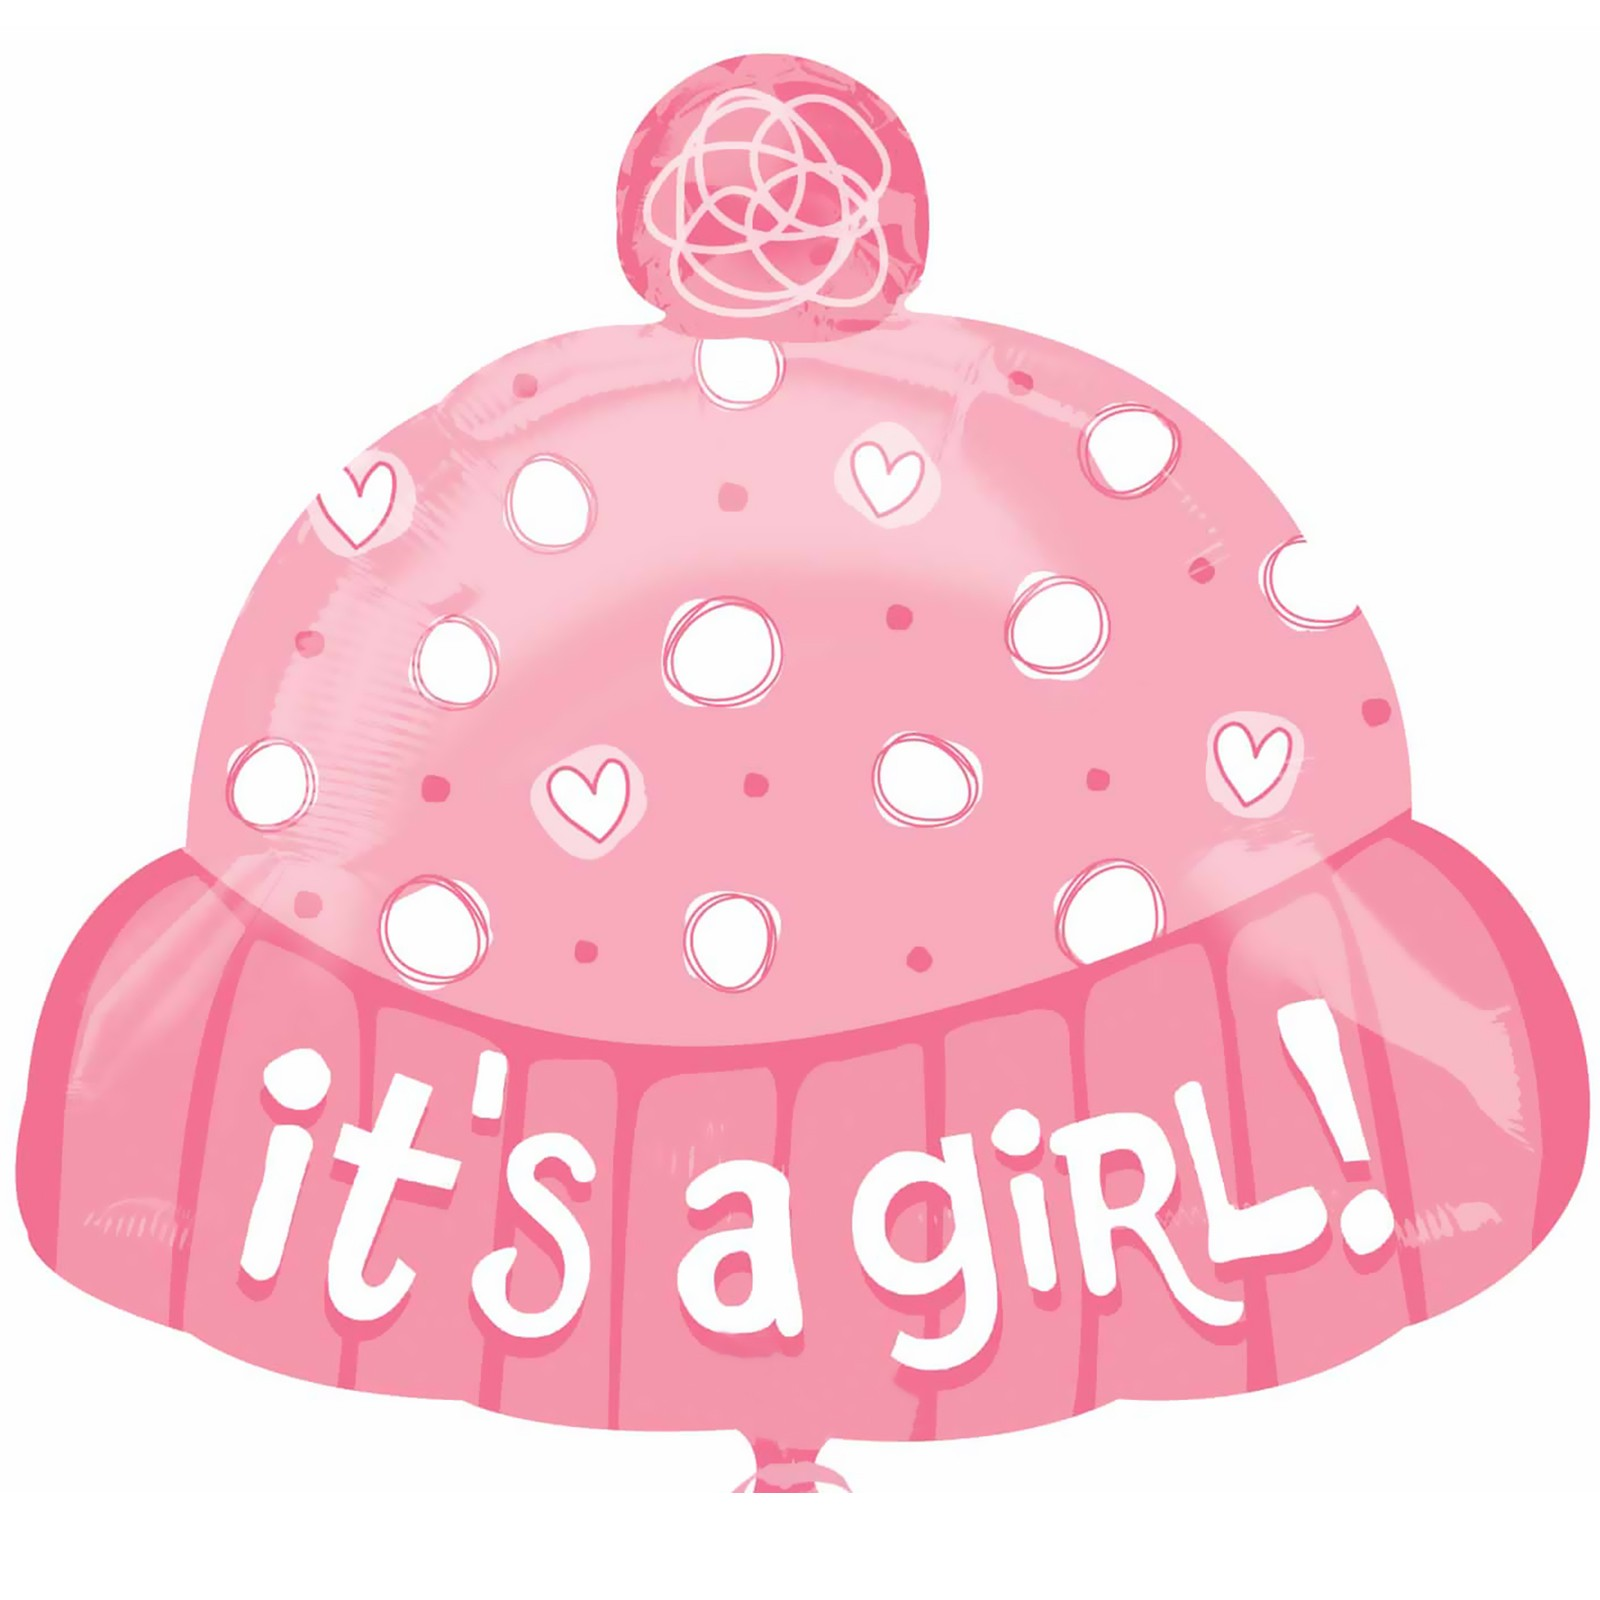 Free hat cliparts download. Cap clipart baby girl